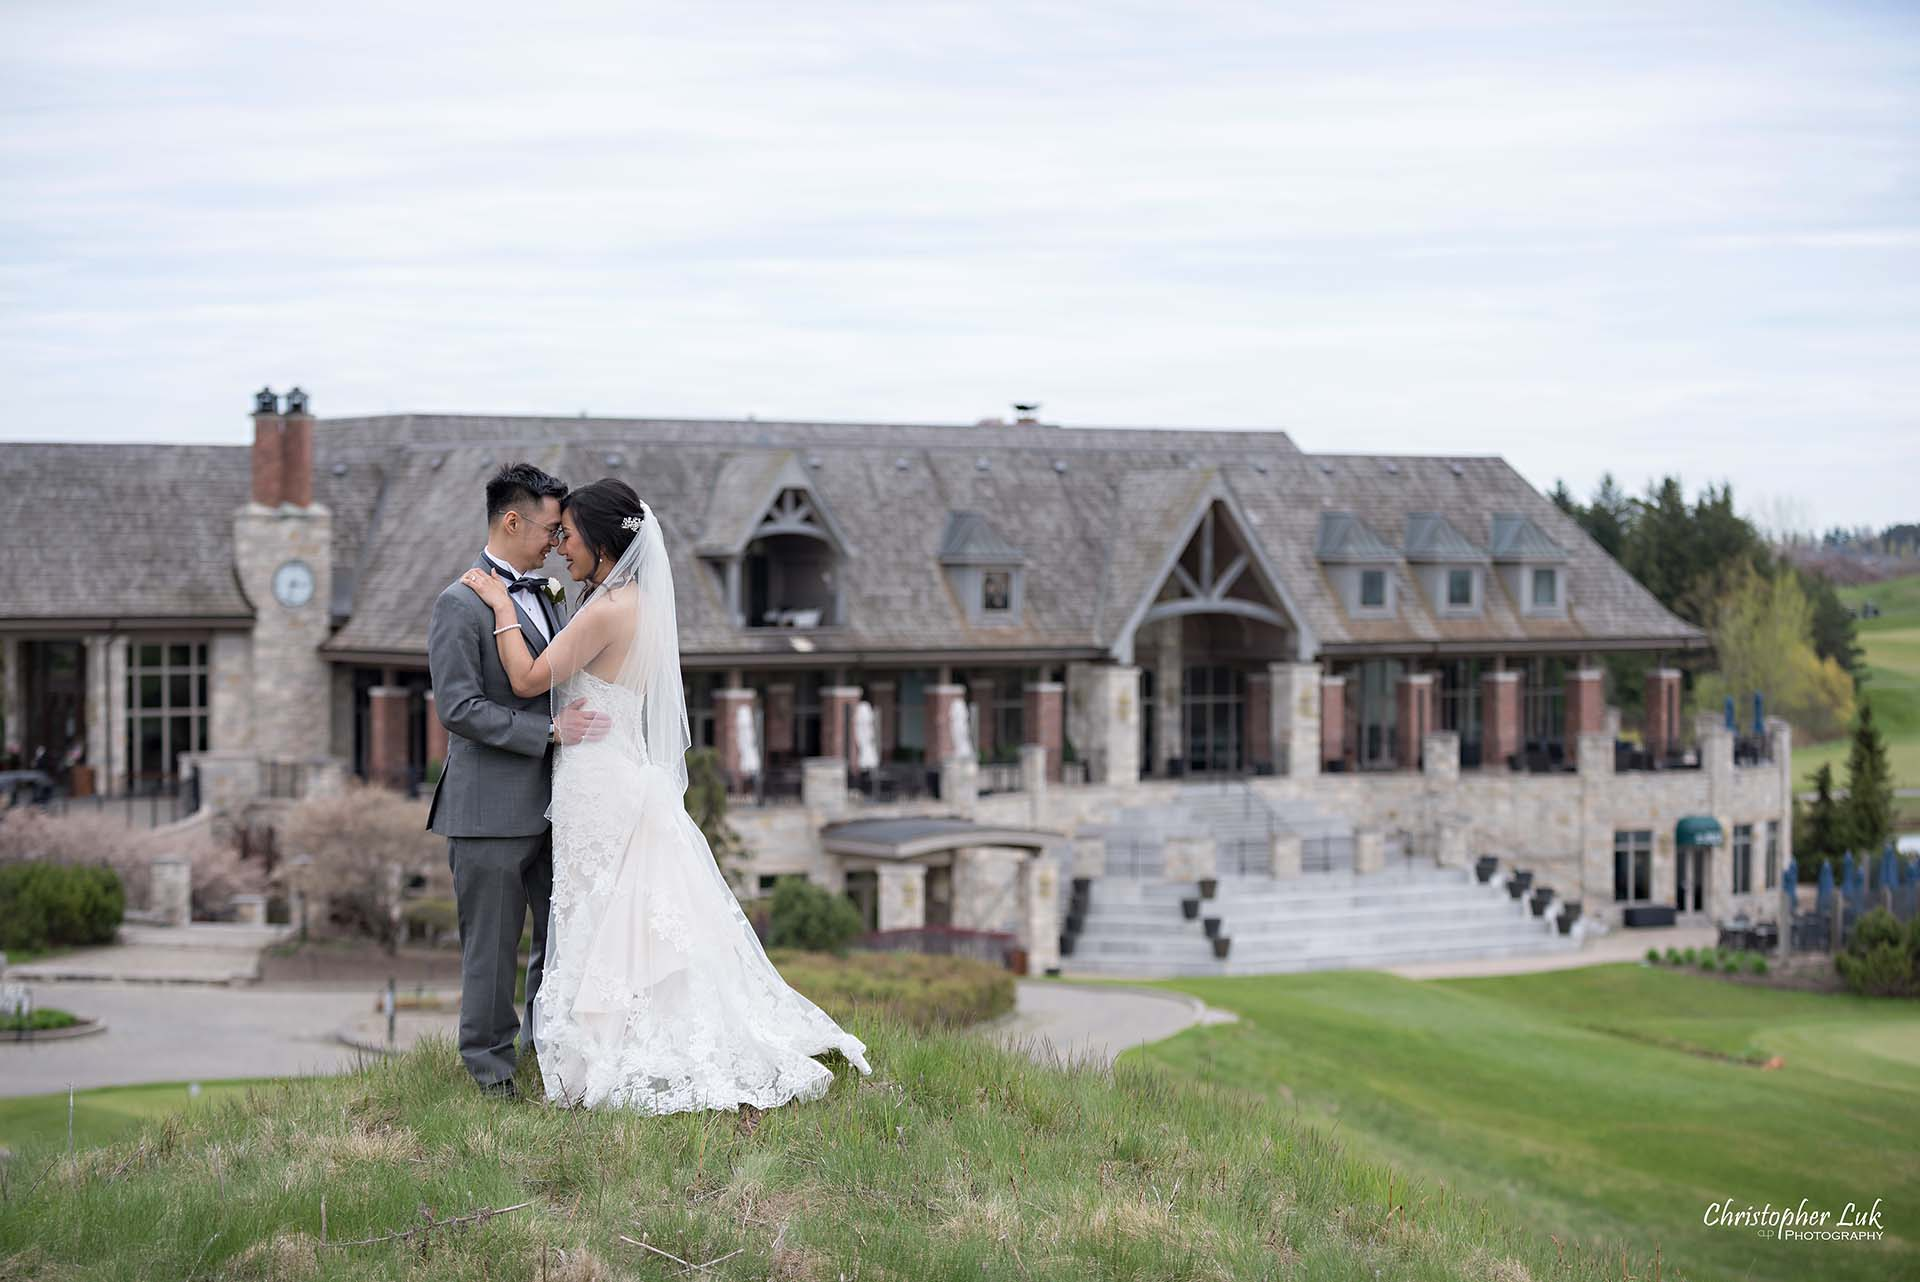 Christopher Luk Toronto Wedding Photographer Eagles Nest Golf Club Course Clubhouse Walking Climbing Up a Grassy Hill Together Bride Groom Hold Hug Scenic Landscape